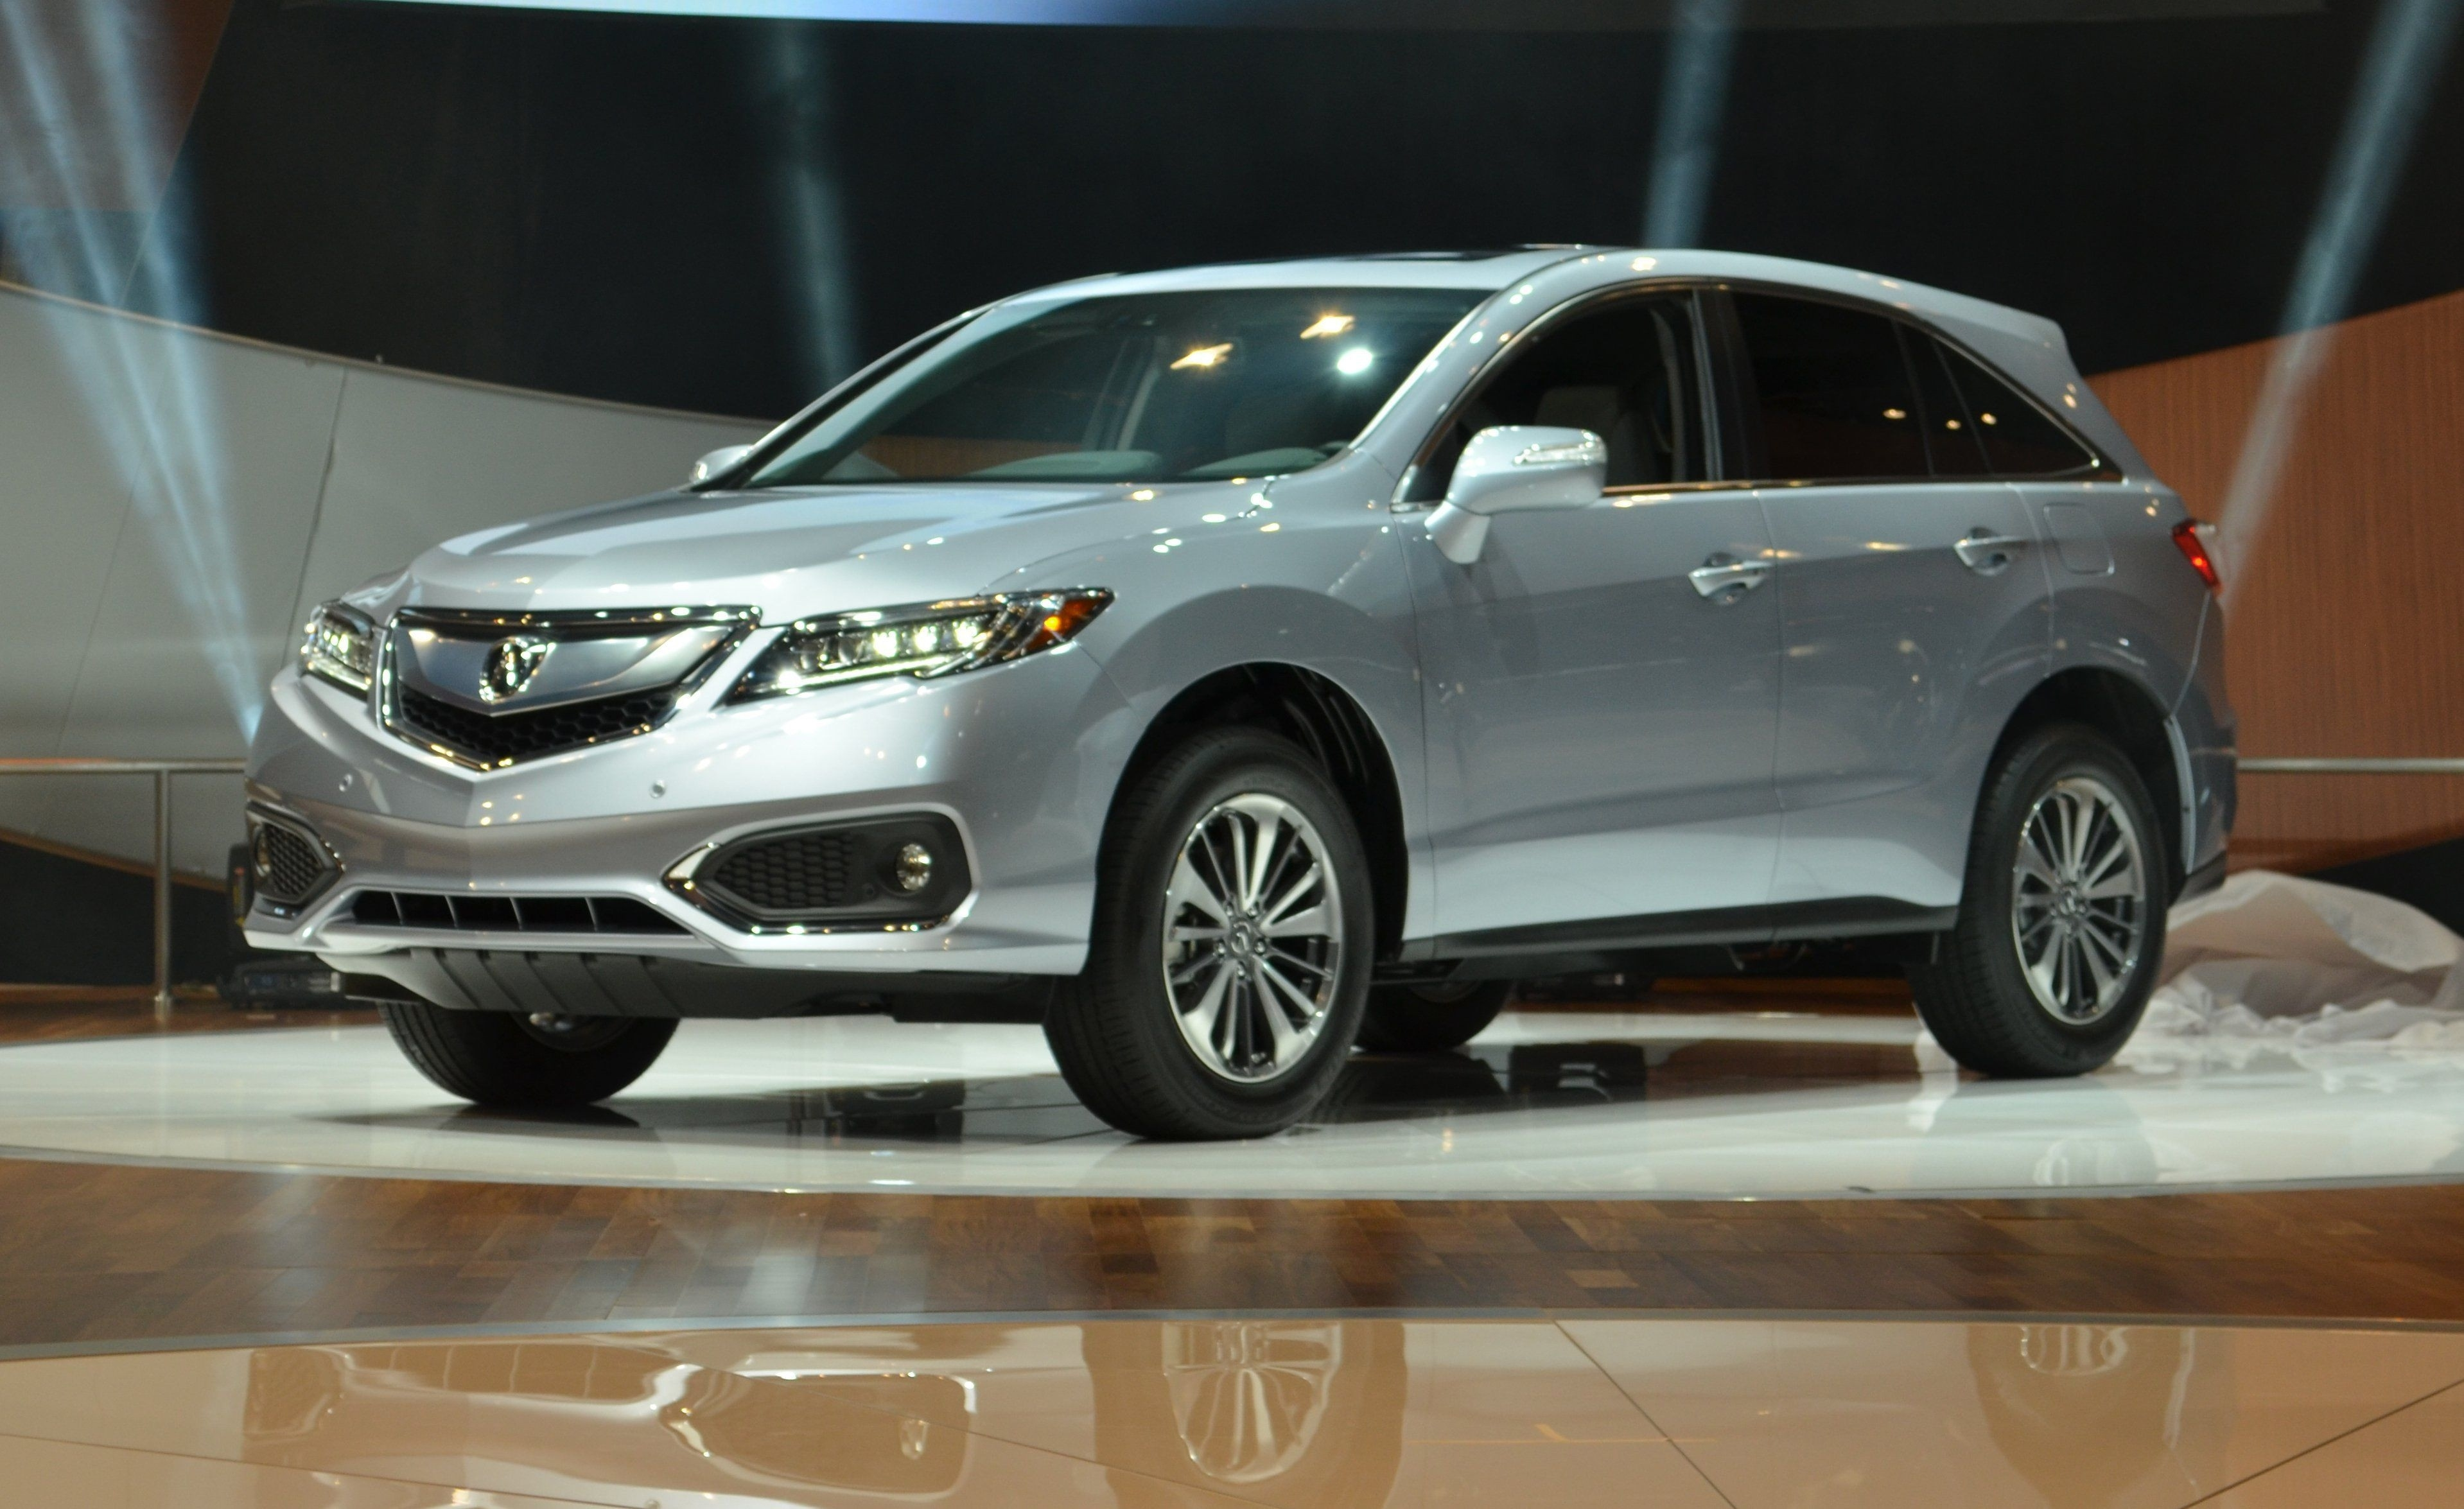 2001 Acura Mdx Awesome the 2020 Acura Mdx 2 Redesign